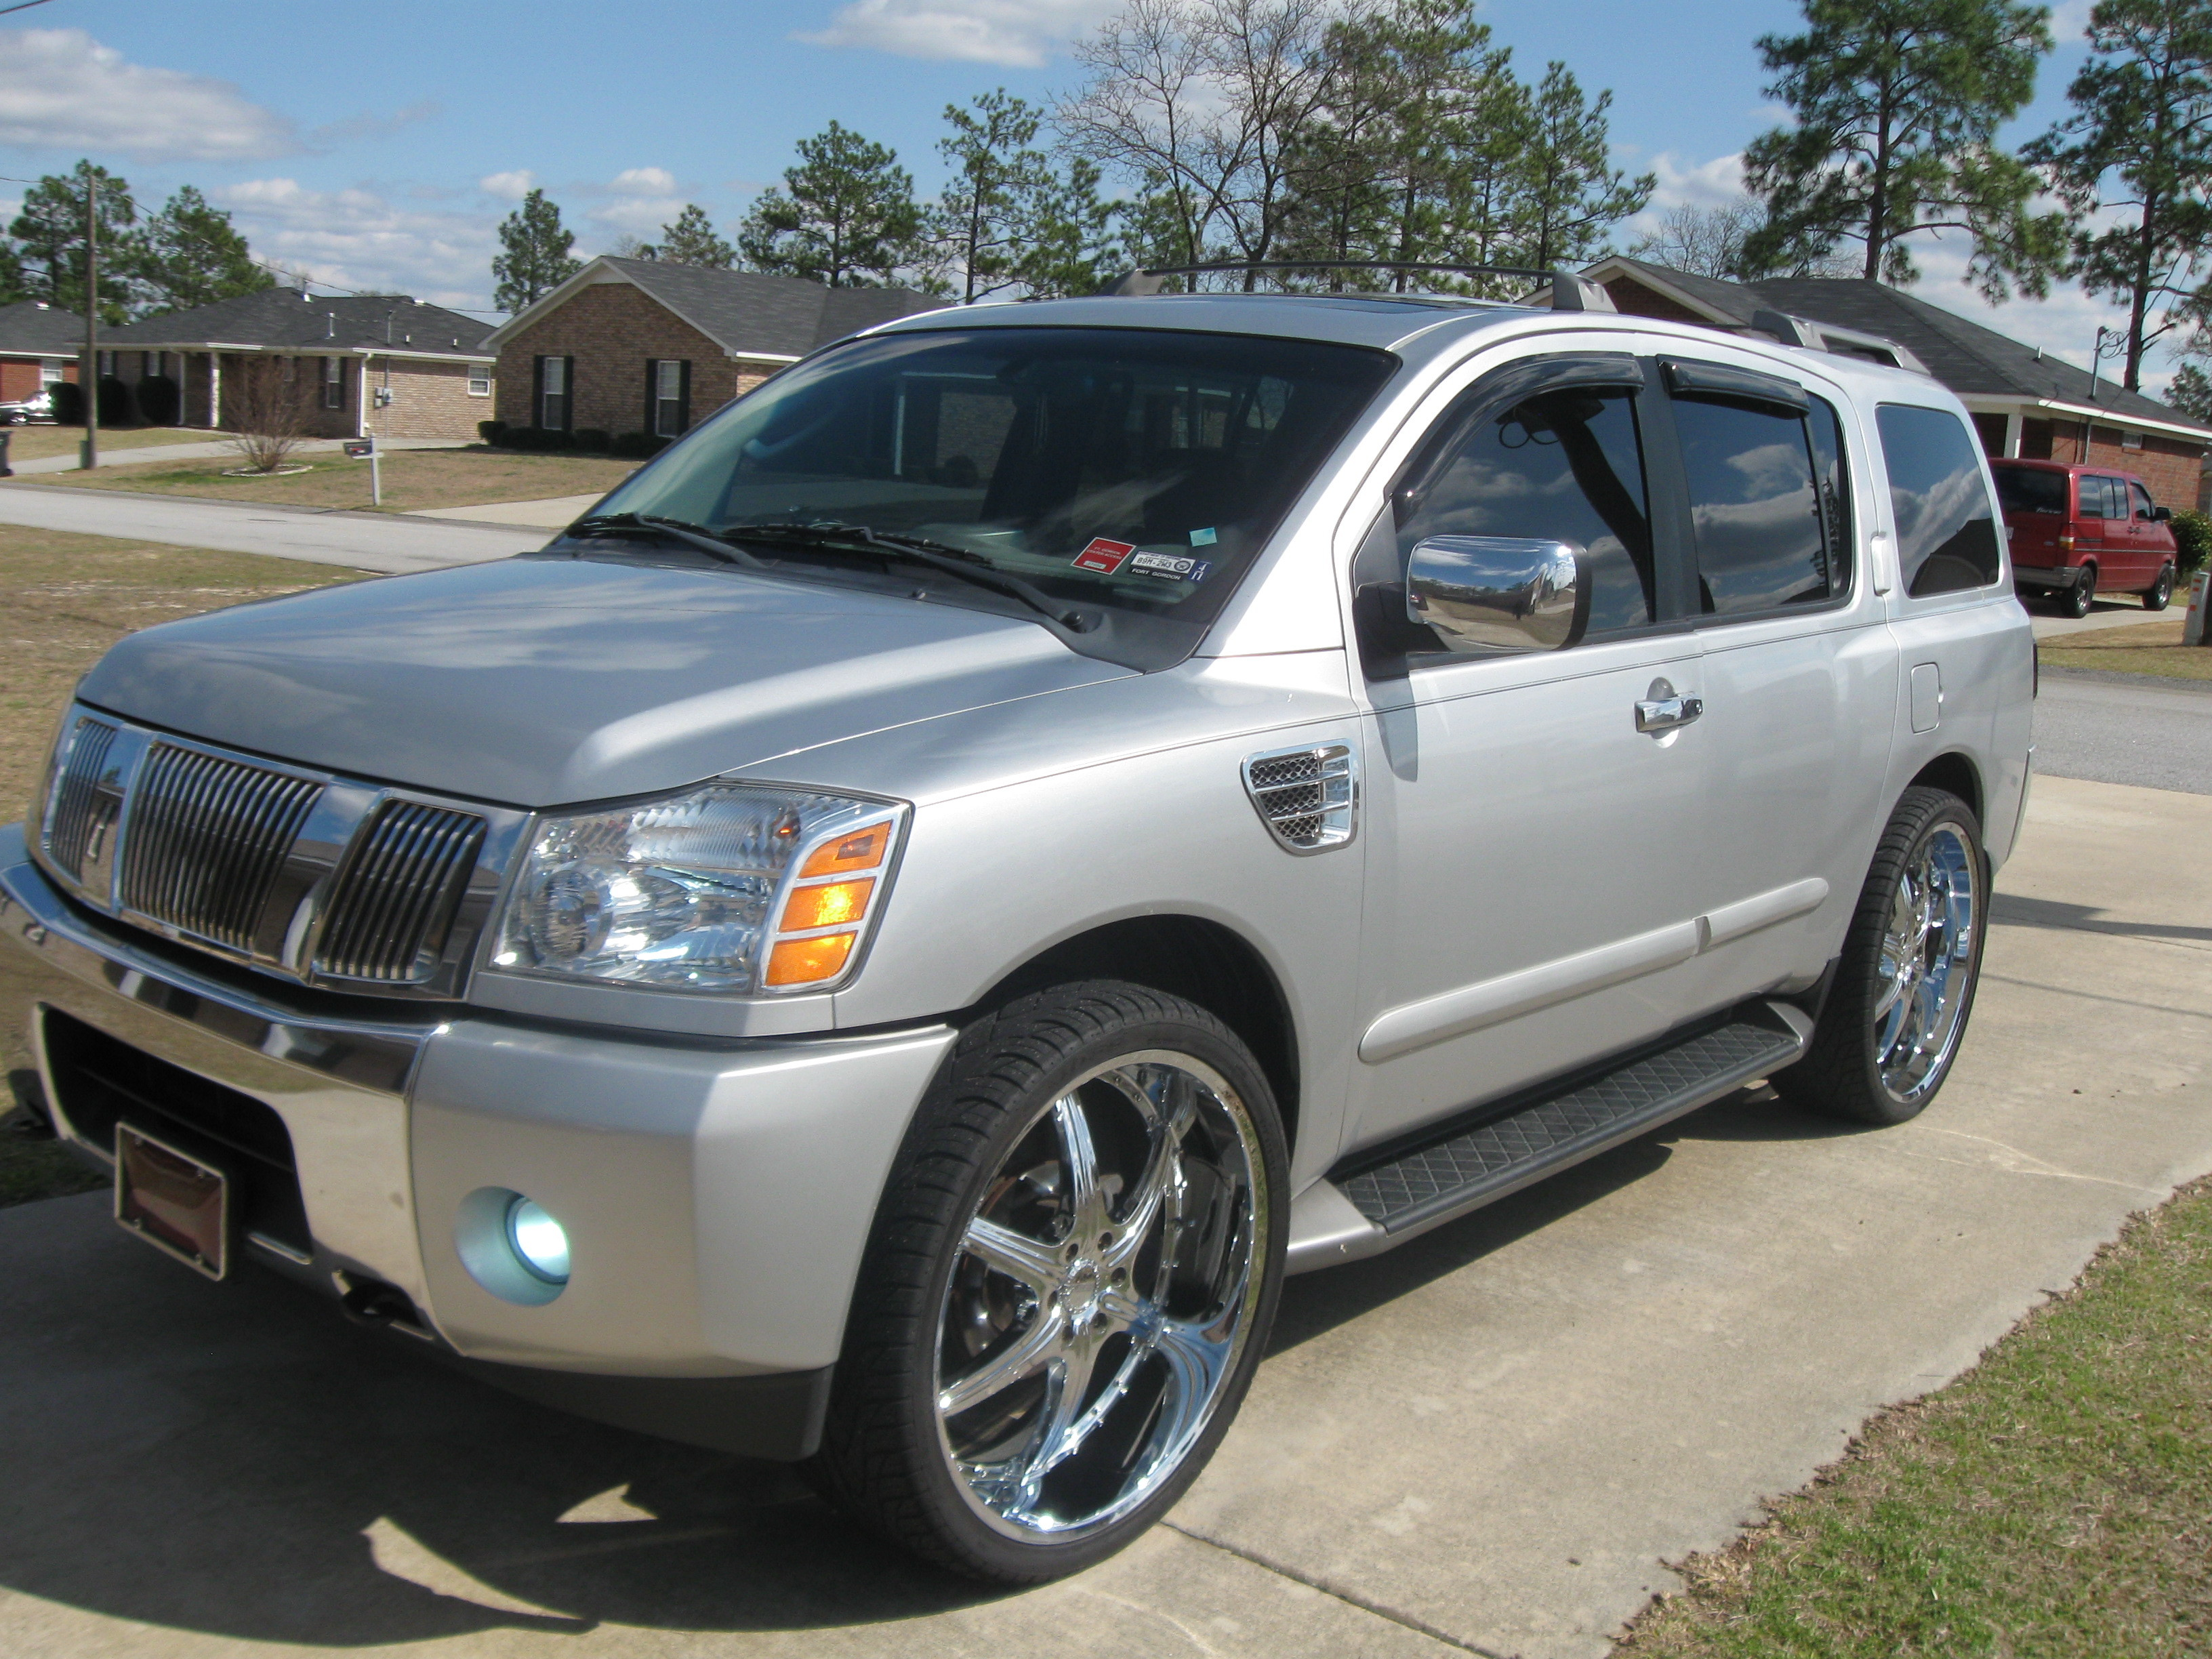 Kdee1 2004 nissan pathfinder armada specs photos modification kdee1 2004 nissan pathfinder armada vanachro Images